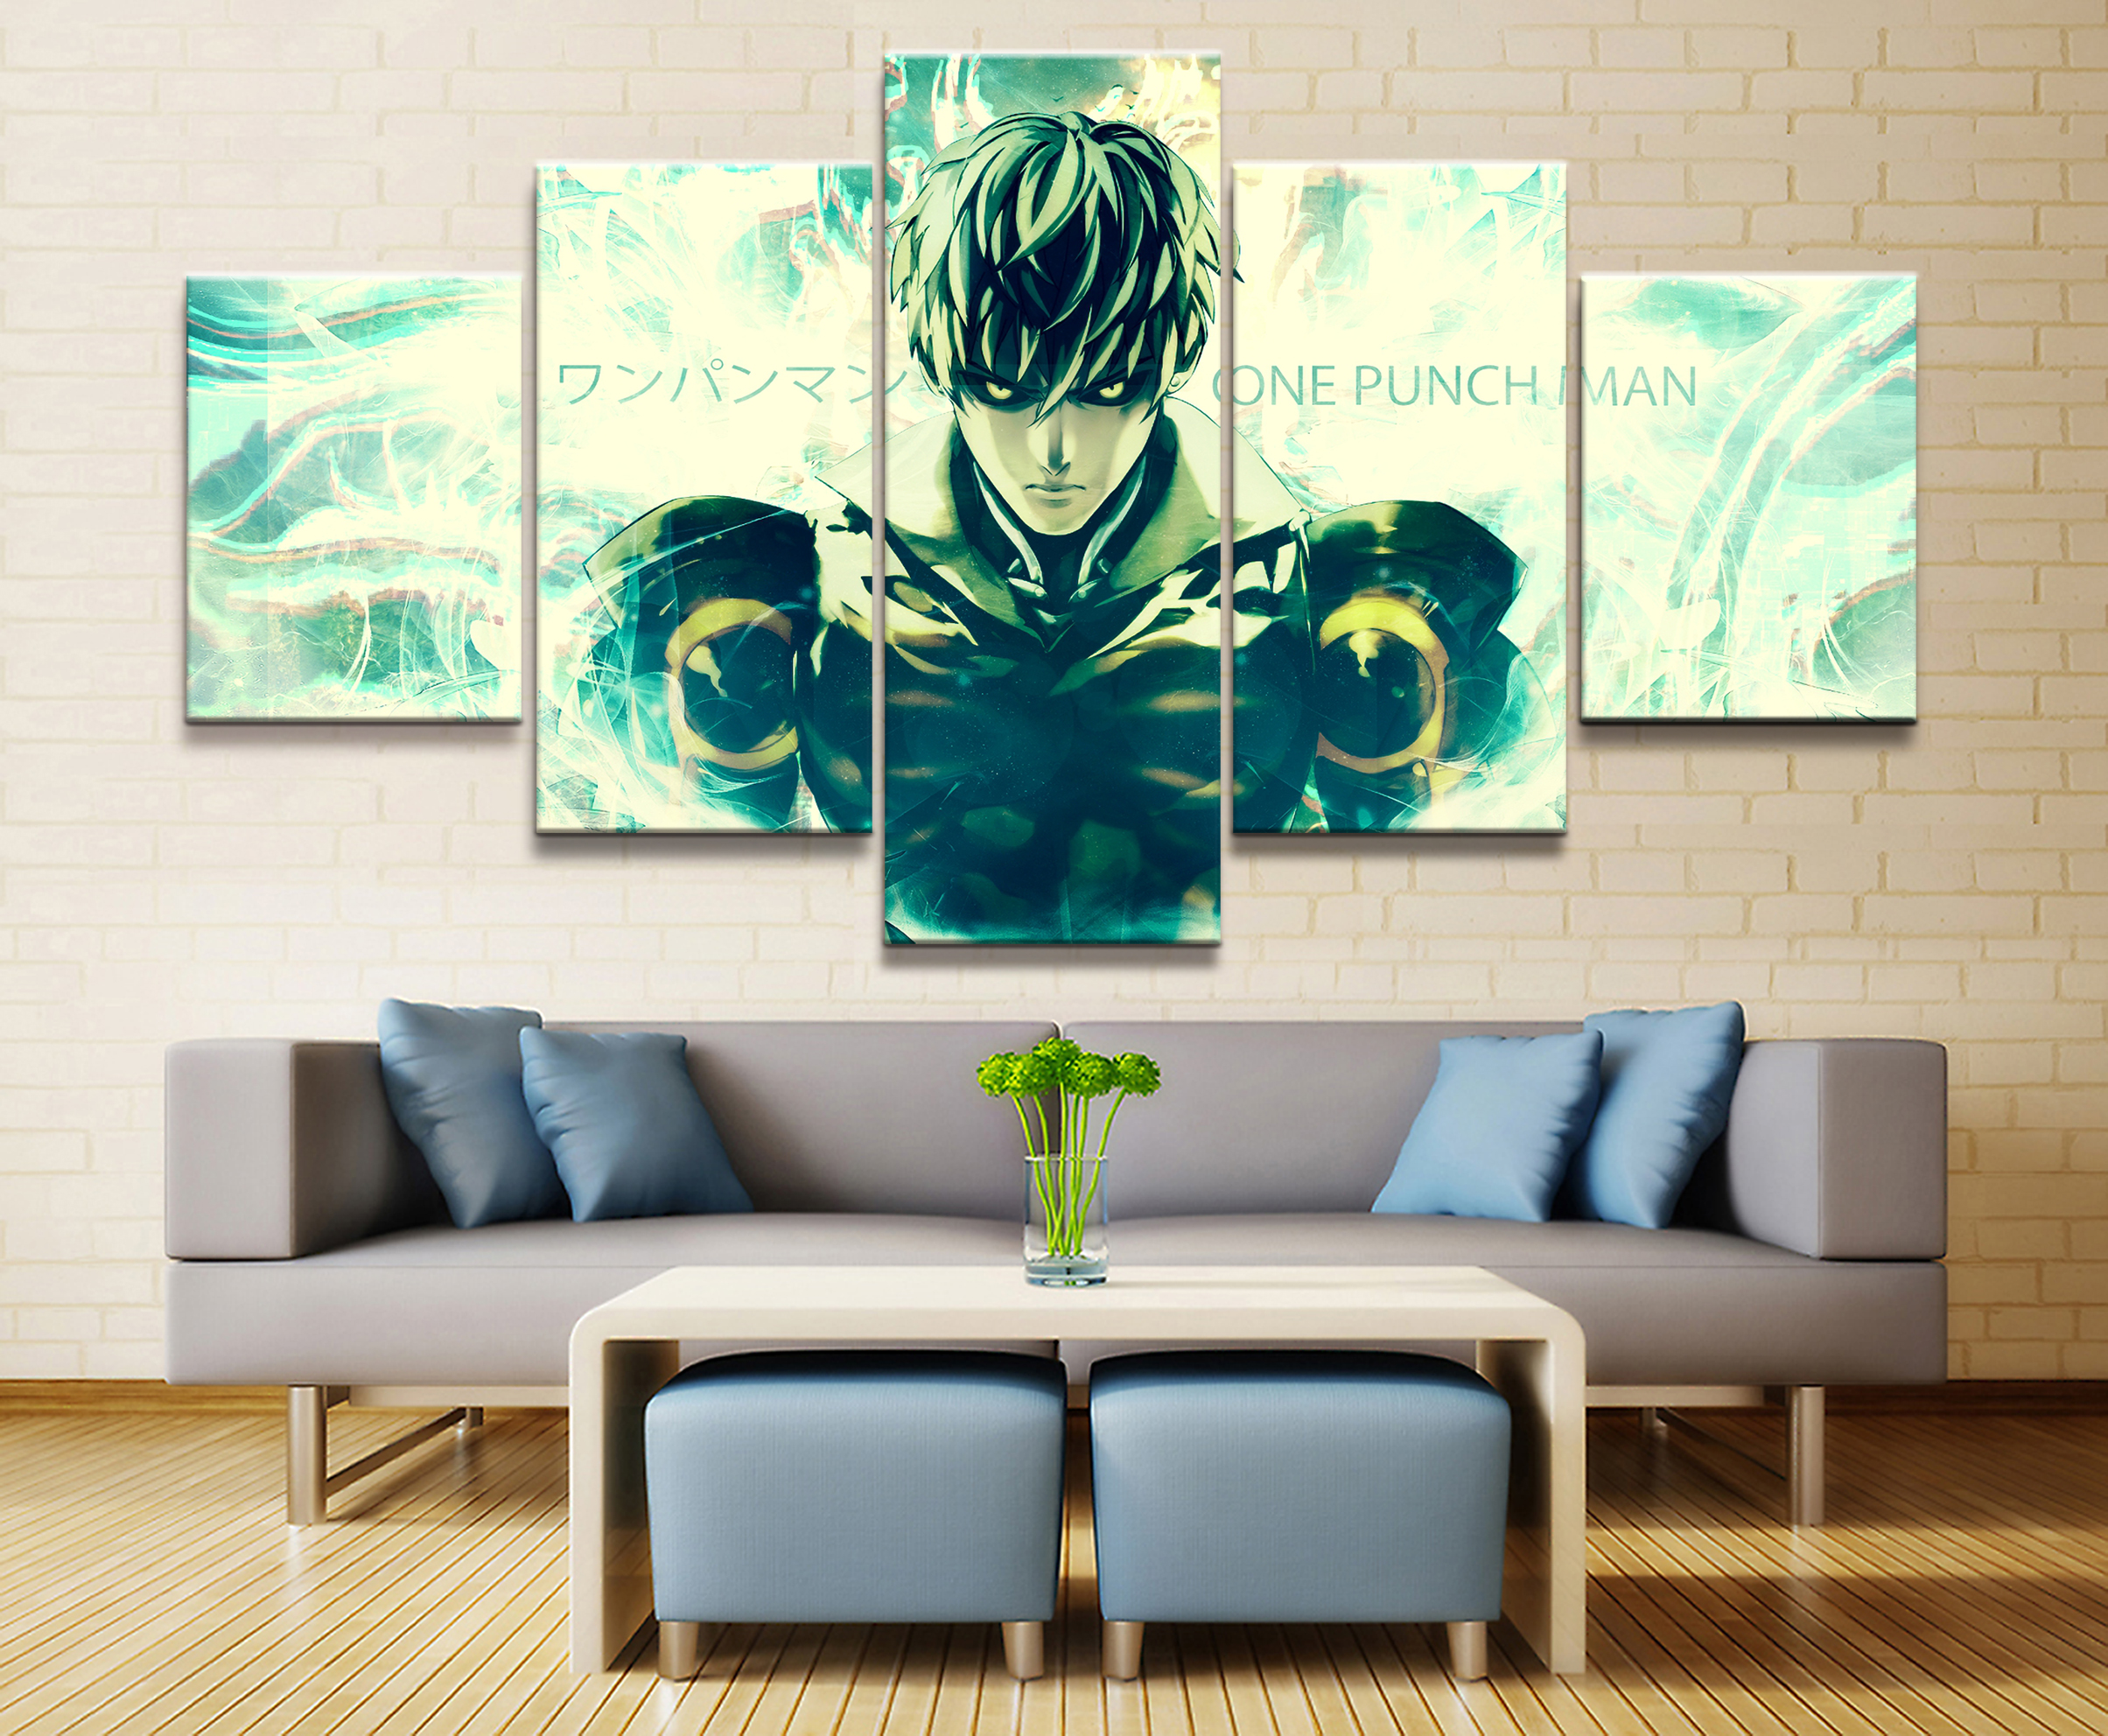 Posters & Prints One Punch Man Anime HD Canvas Print Wall Poster ...